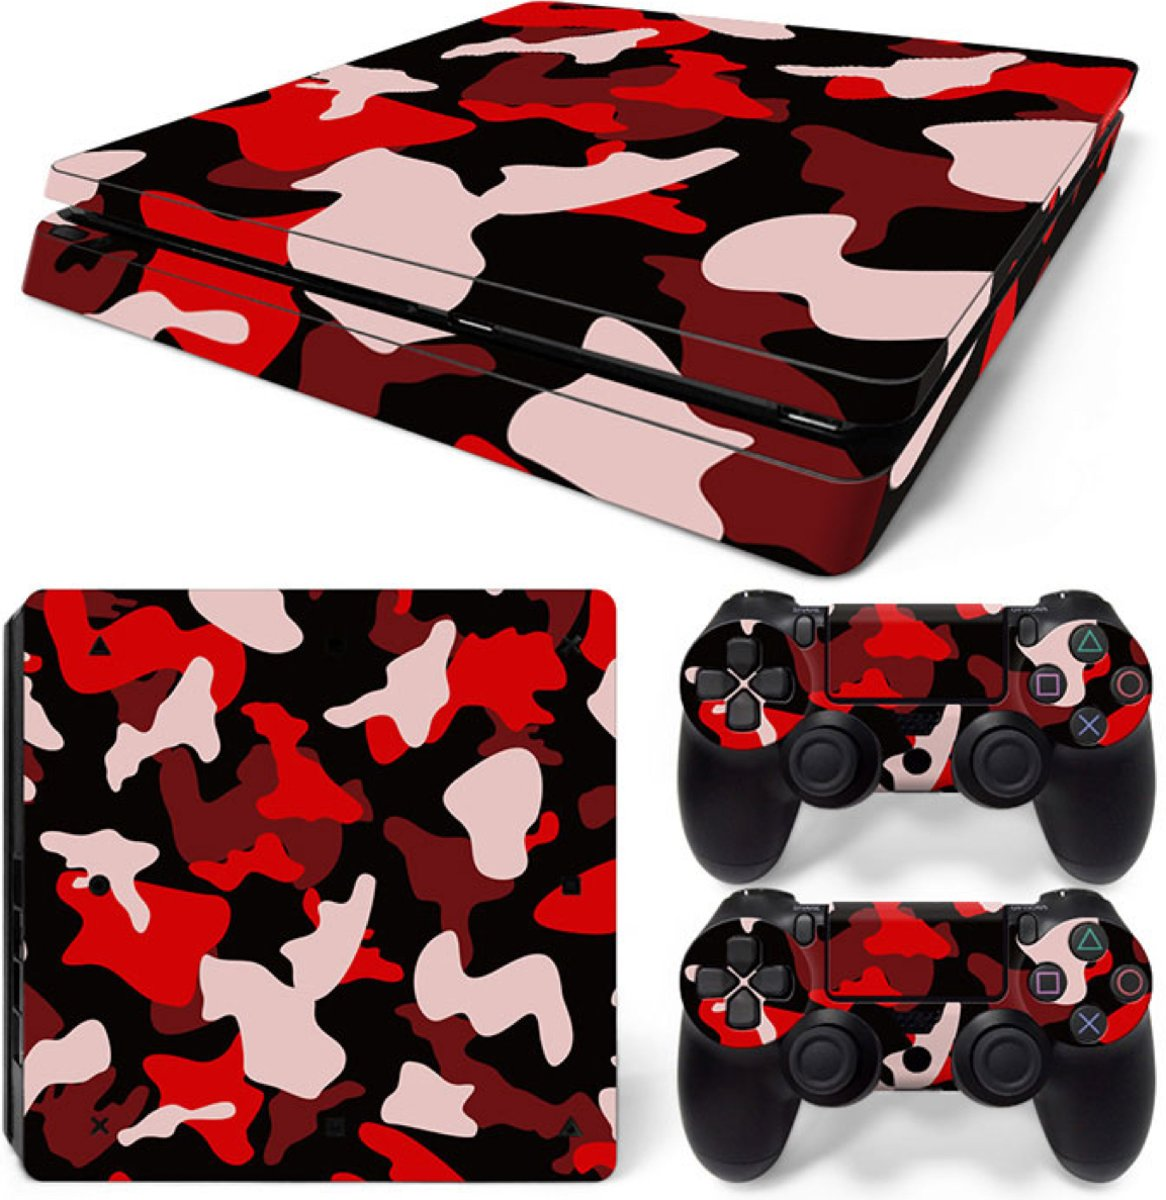 Army Camo / Rood Zwart - PS4 Slim Console Skins PlayStation Stickers